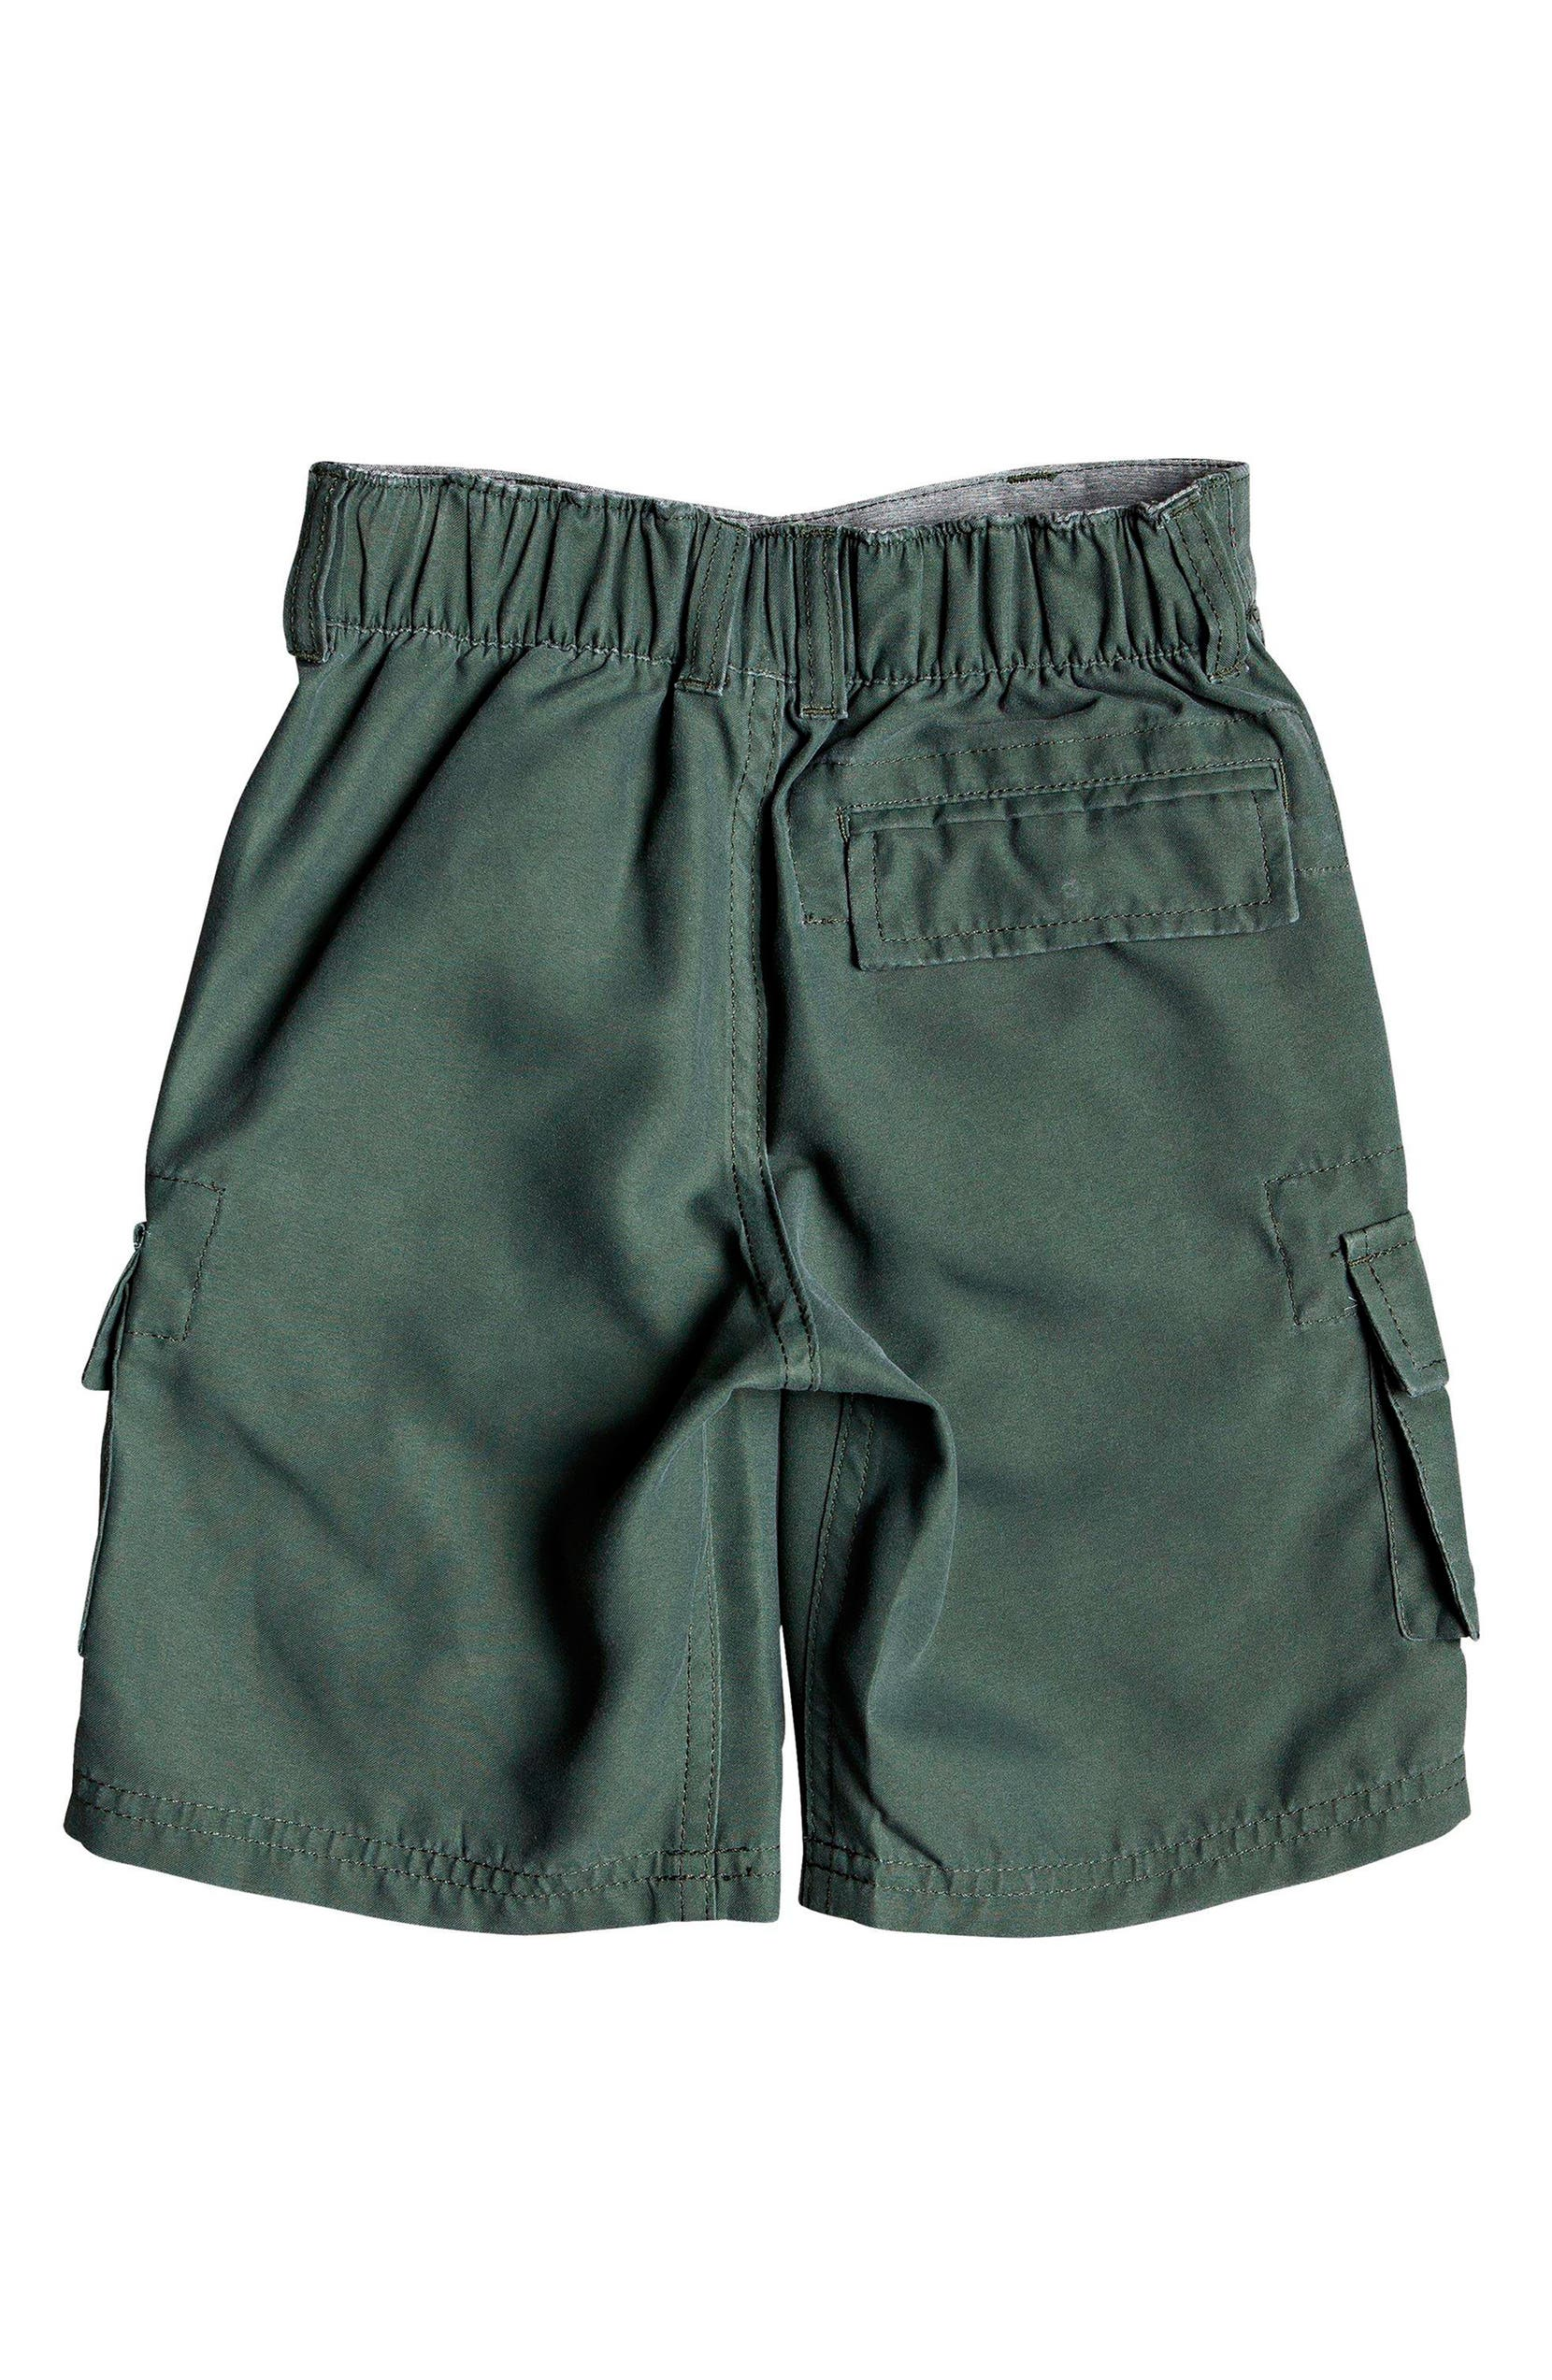 1603484e1bec3 Quiksilver Rogue Surfwash Amphibian Hybrid Shorts (Toddler Boys & Little  Boys) | Nordstrom